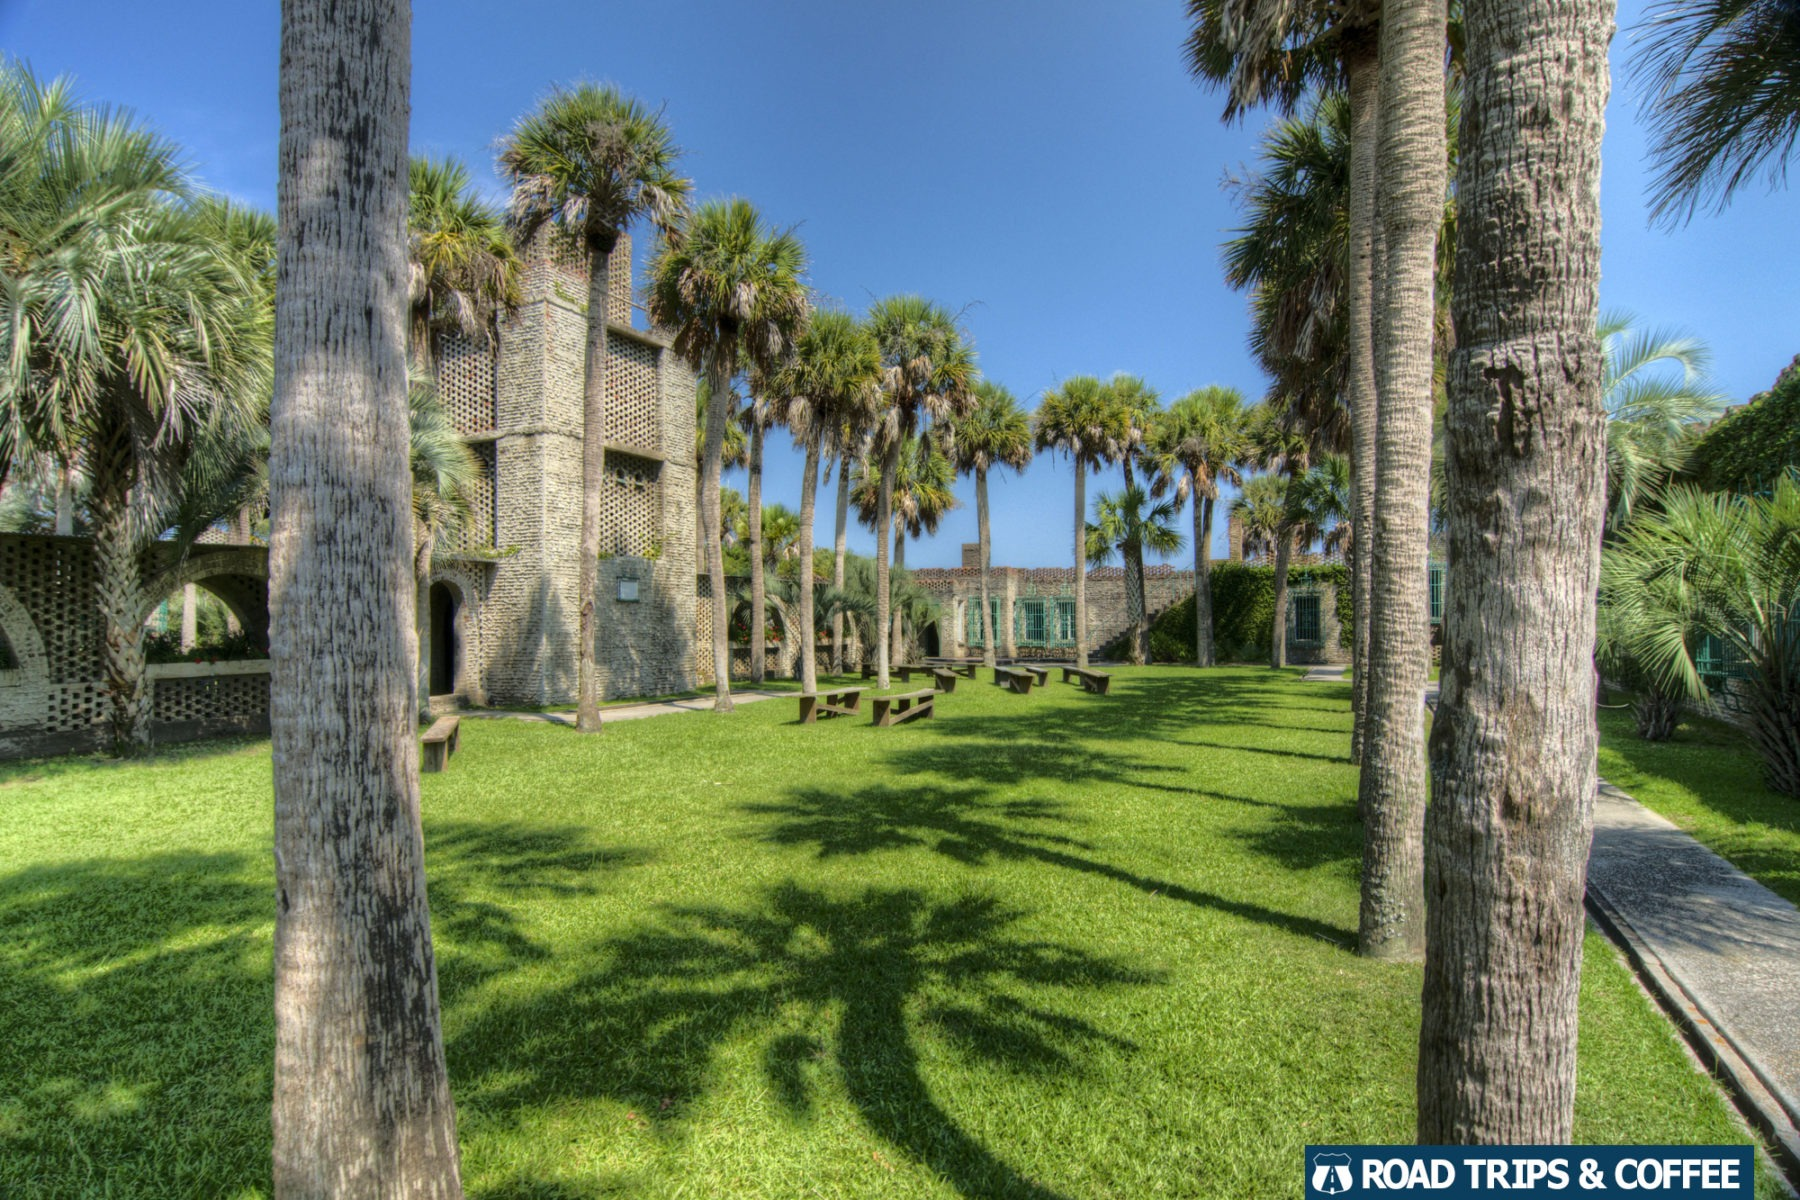 Palm trees and benches in the courtyard of Atalaya Castle at Huntington Beach State Park in Murrells Inlet, South Carolina